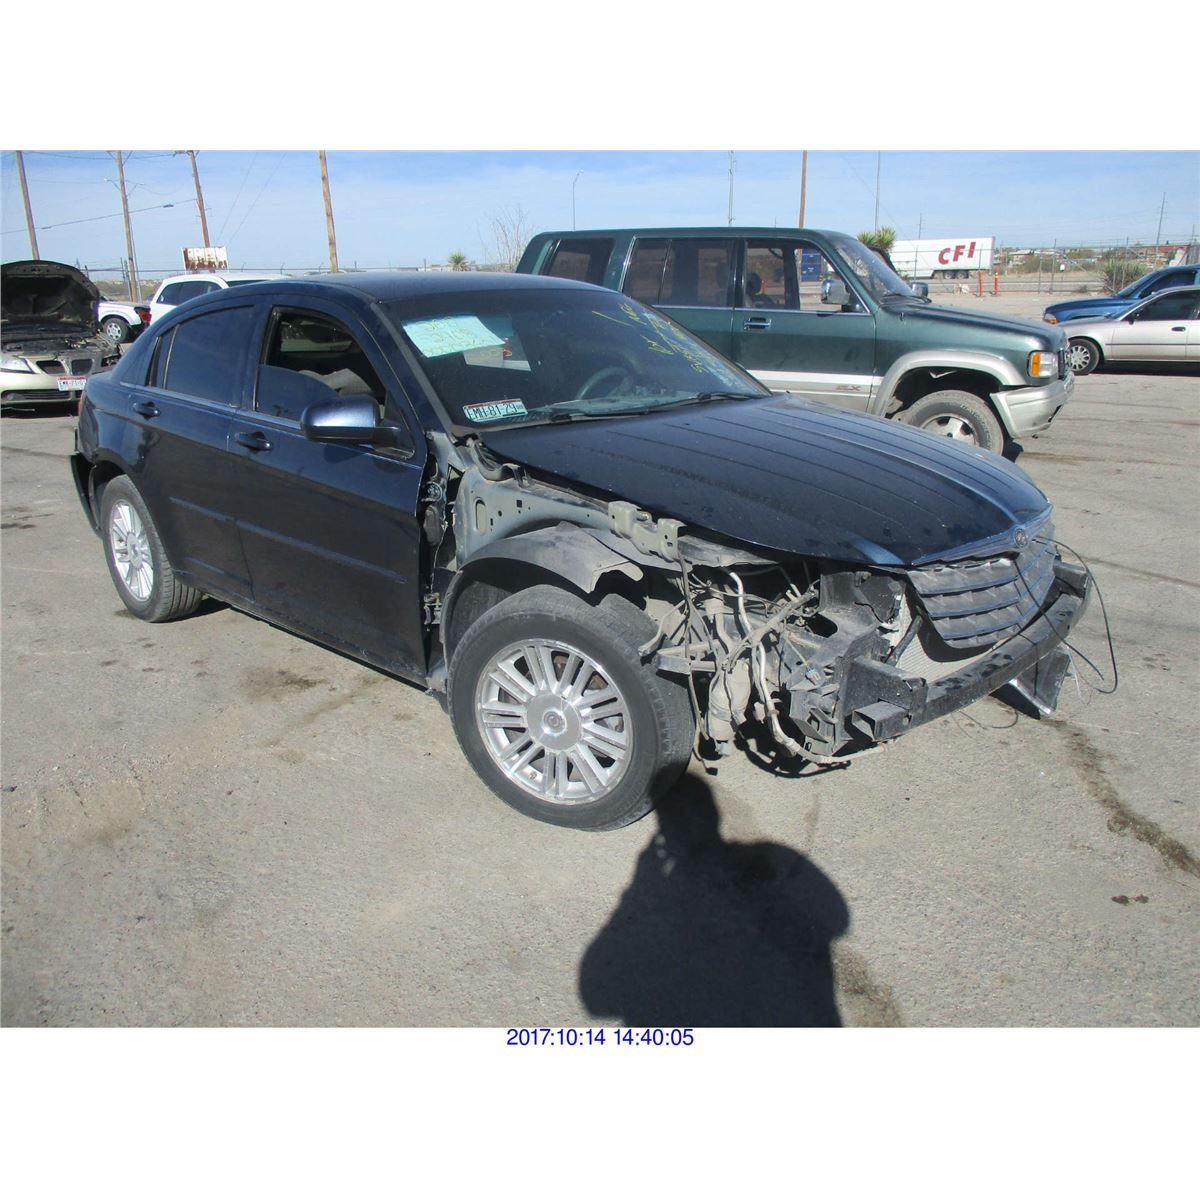 el tx paso s cars trucks for u in used report news sale world chrysler